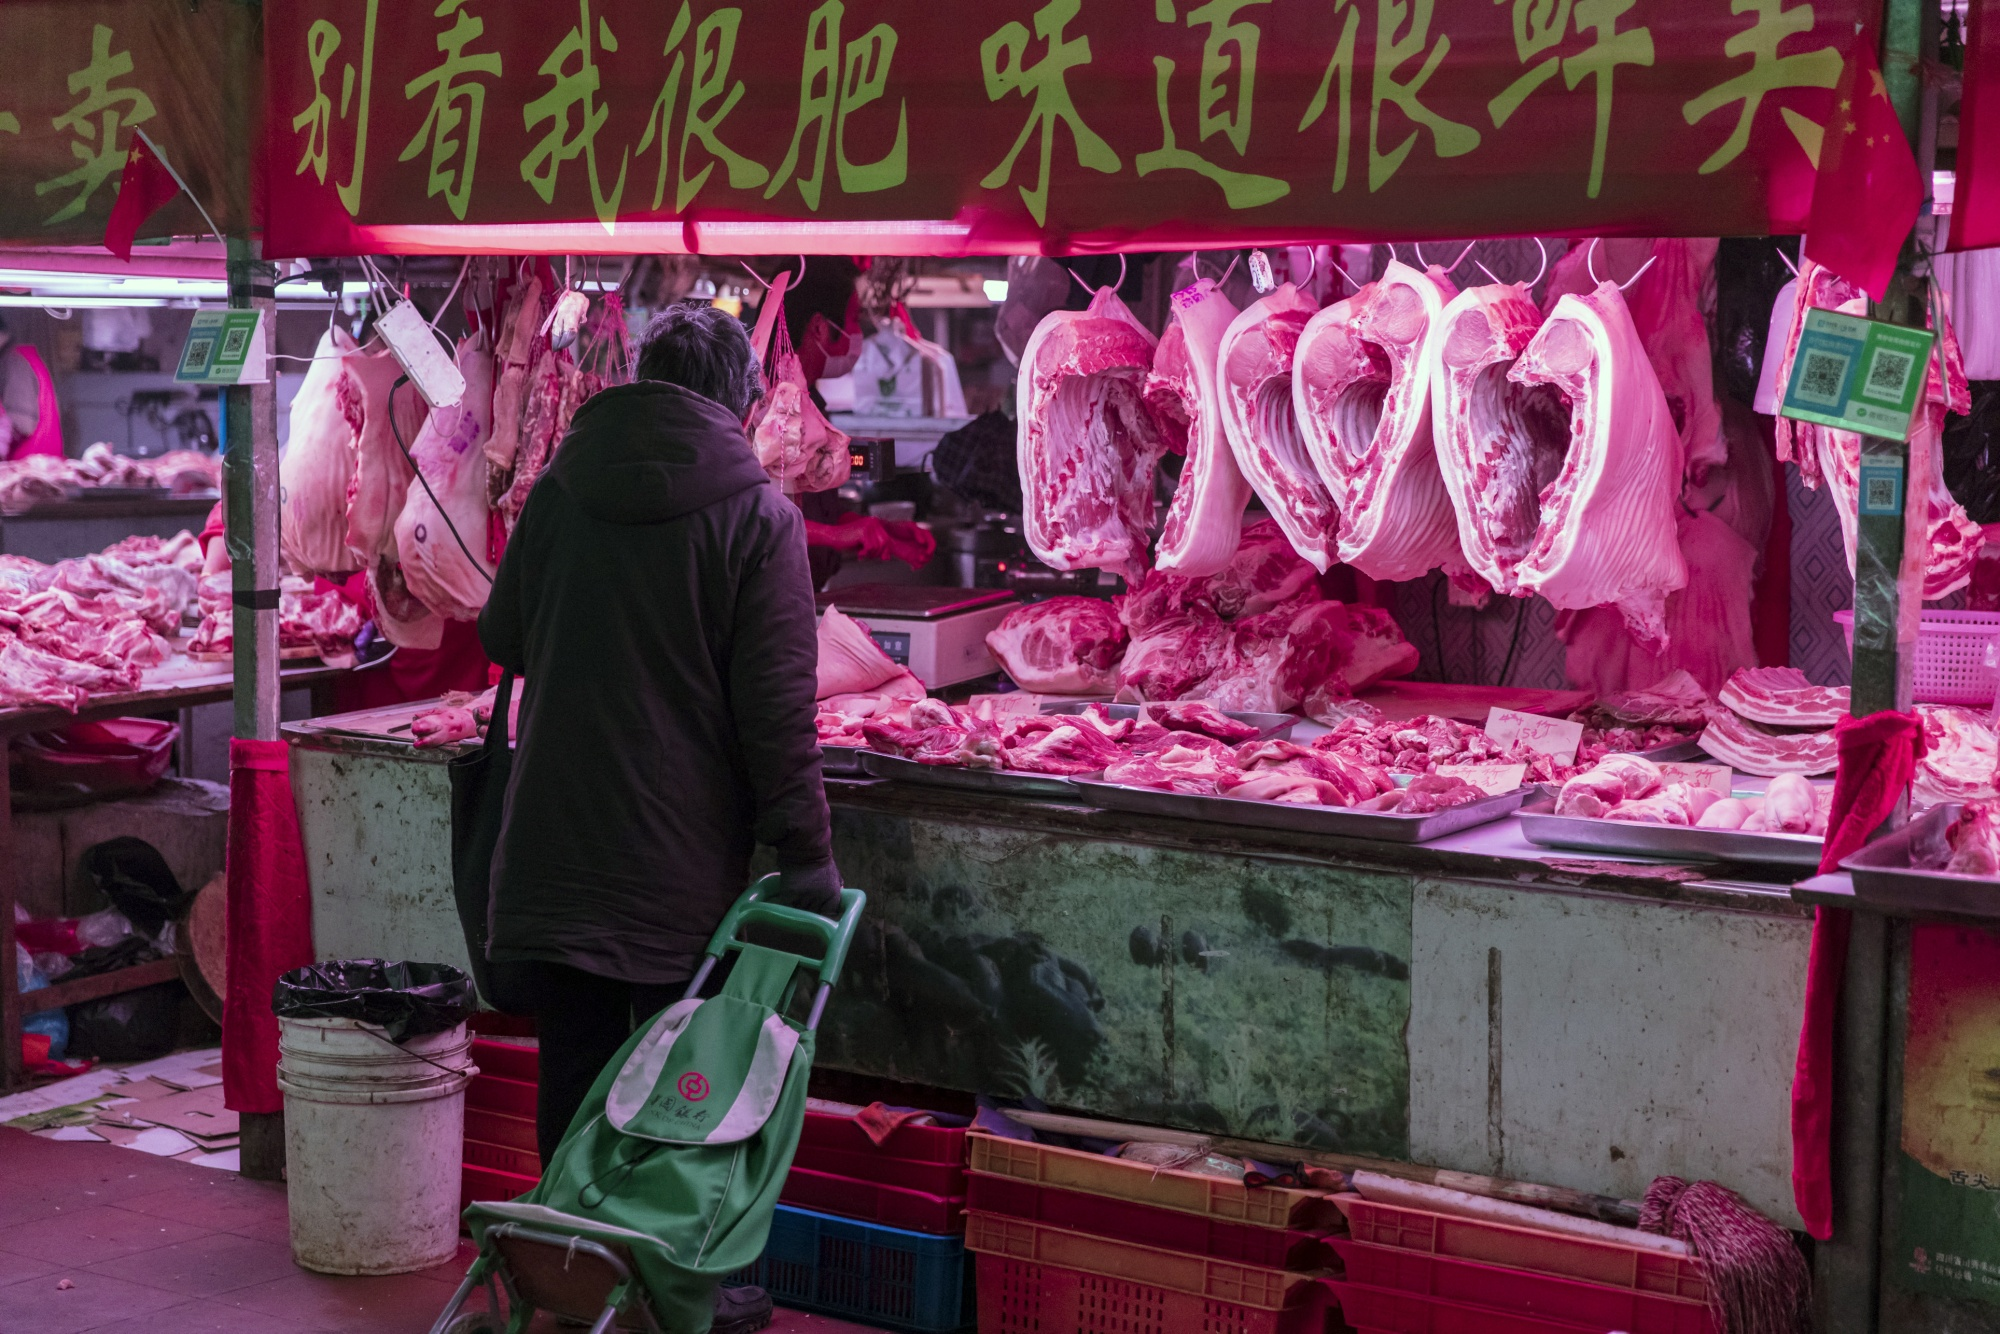 A customer buys pork at a market in Shanghai, China.